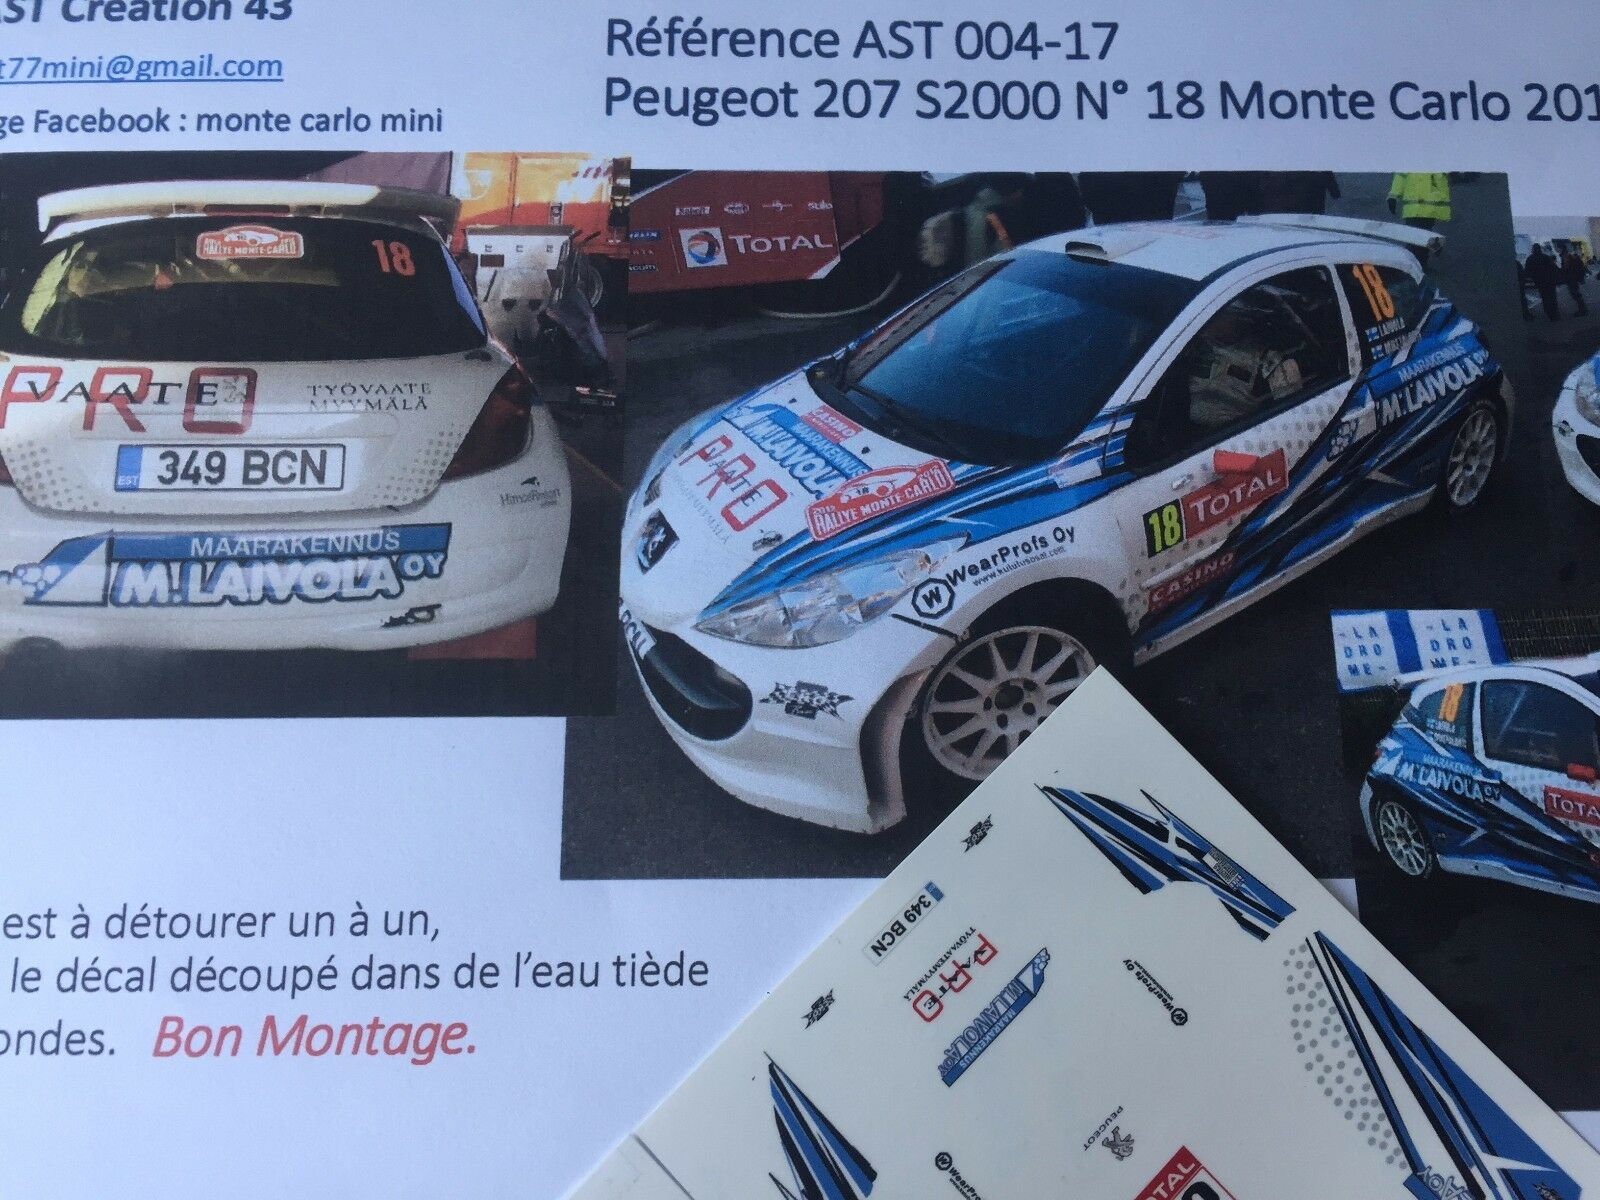 NEW DECAL CALCA 1 43 PEUGEOT 207 S2000 N°18 Rally WRC MONTE CARLO 2012